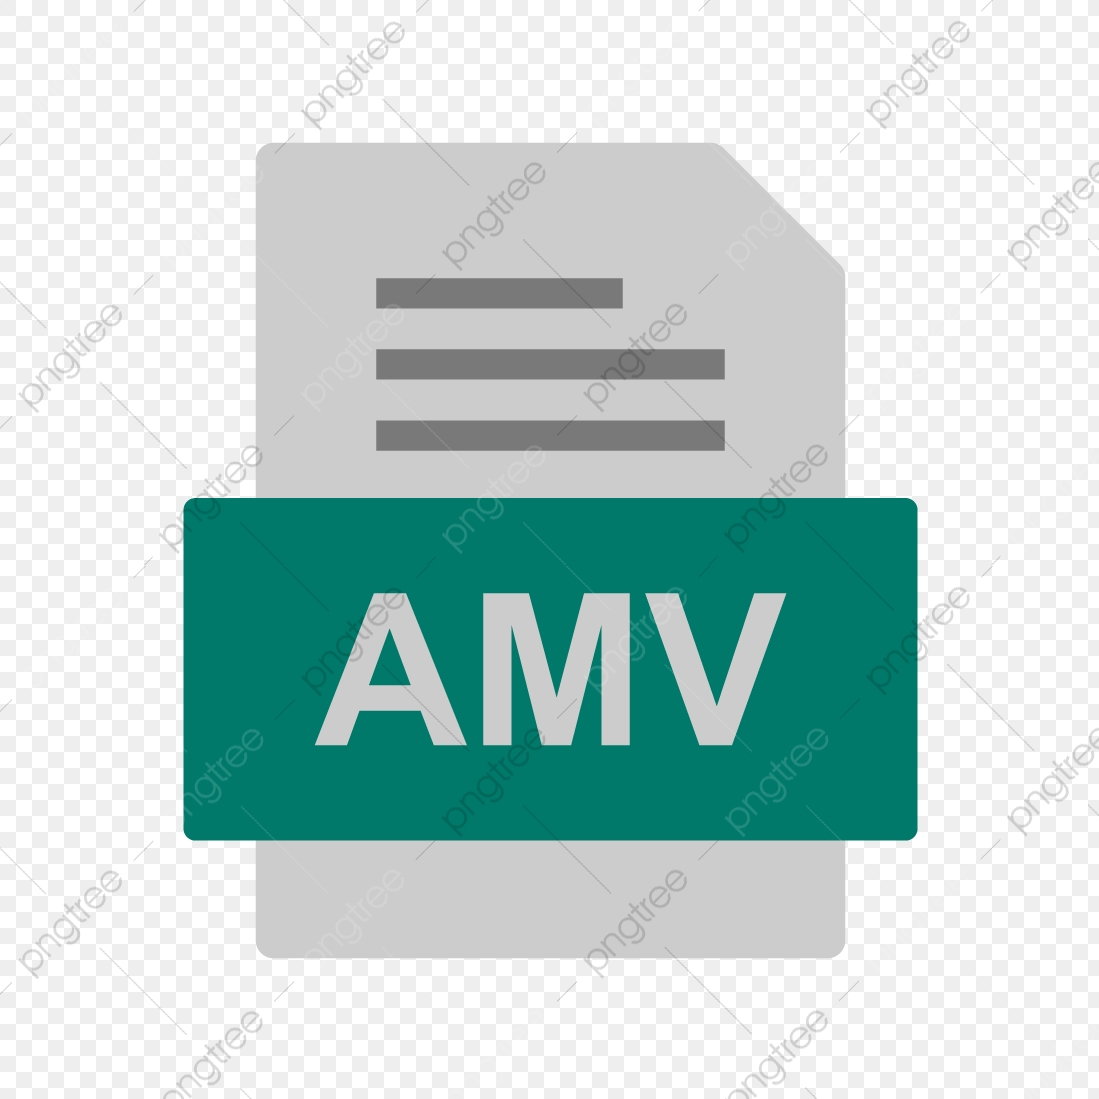 Amv File Document Icon Amv Document File PNG and Vector with 1099x1099